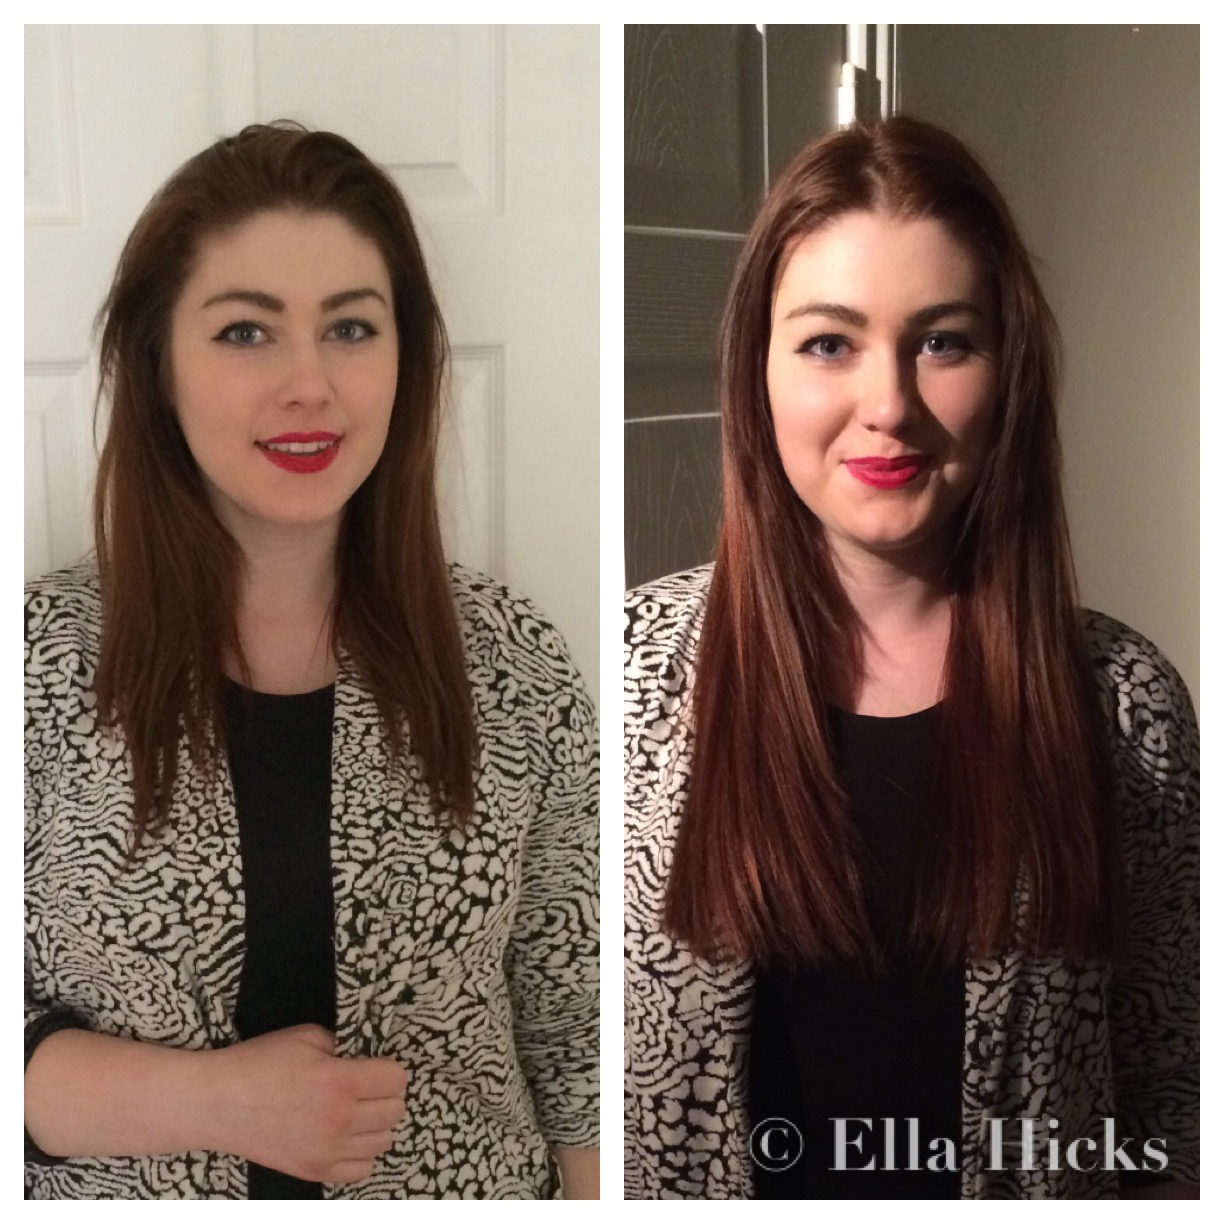 Ella hicks hair extensions portfolio 16 natural hair extensions front pmusecretfo Image collections